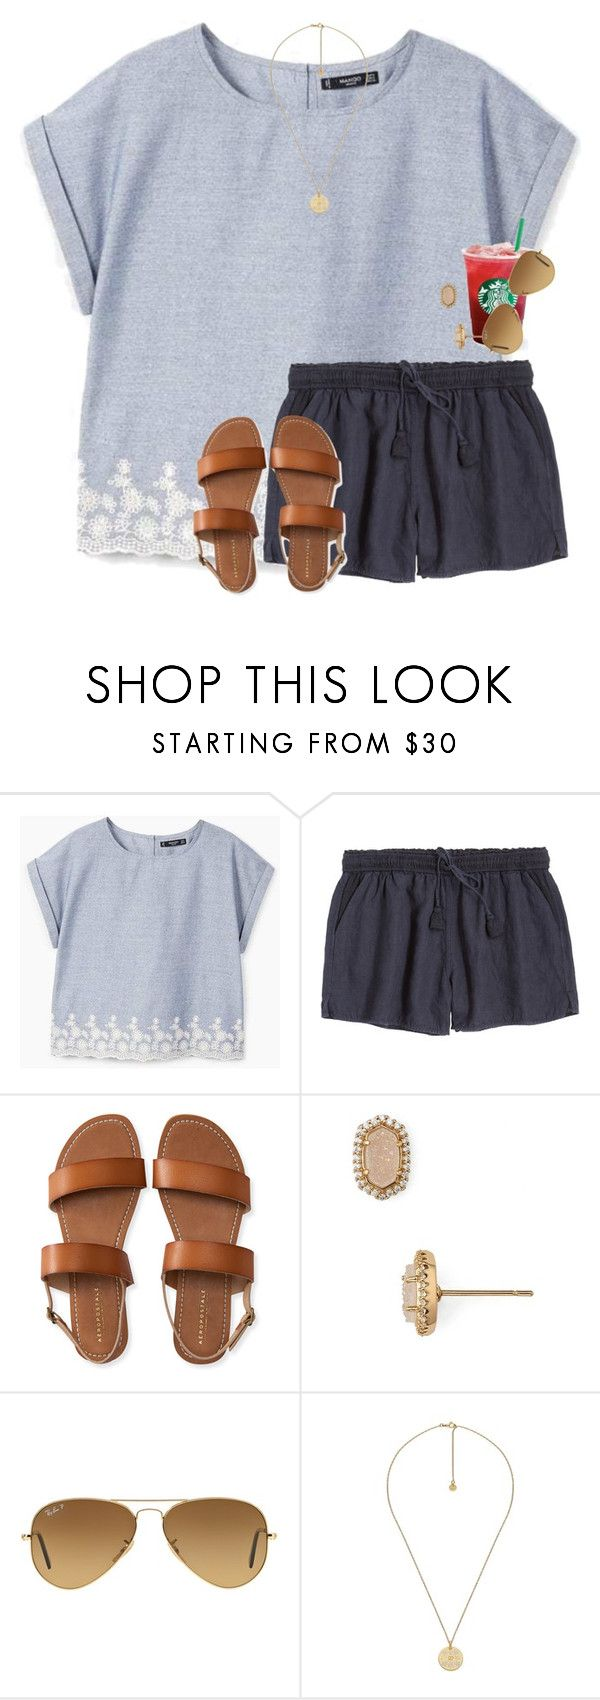 """""""Kinda obsessed with the Christy Miller series...."""" by amberfmillard-1 ❤ liked on Polyvore featuring MANGO, Calypso St. Barth, Aéropostale, Kendra Scott, Ray-Ban and Gucci"""